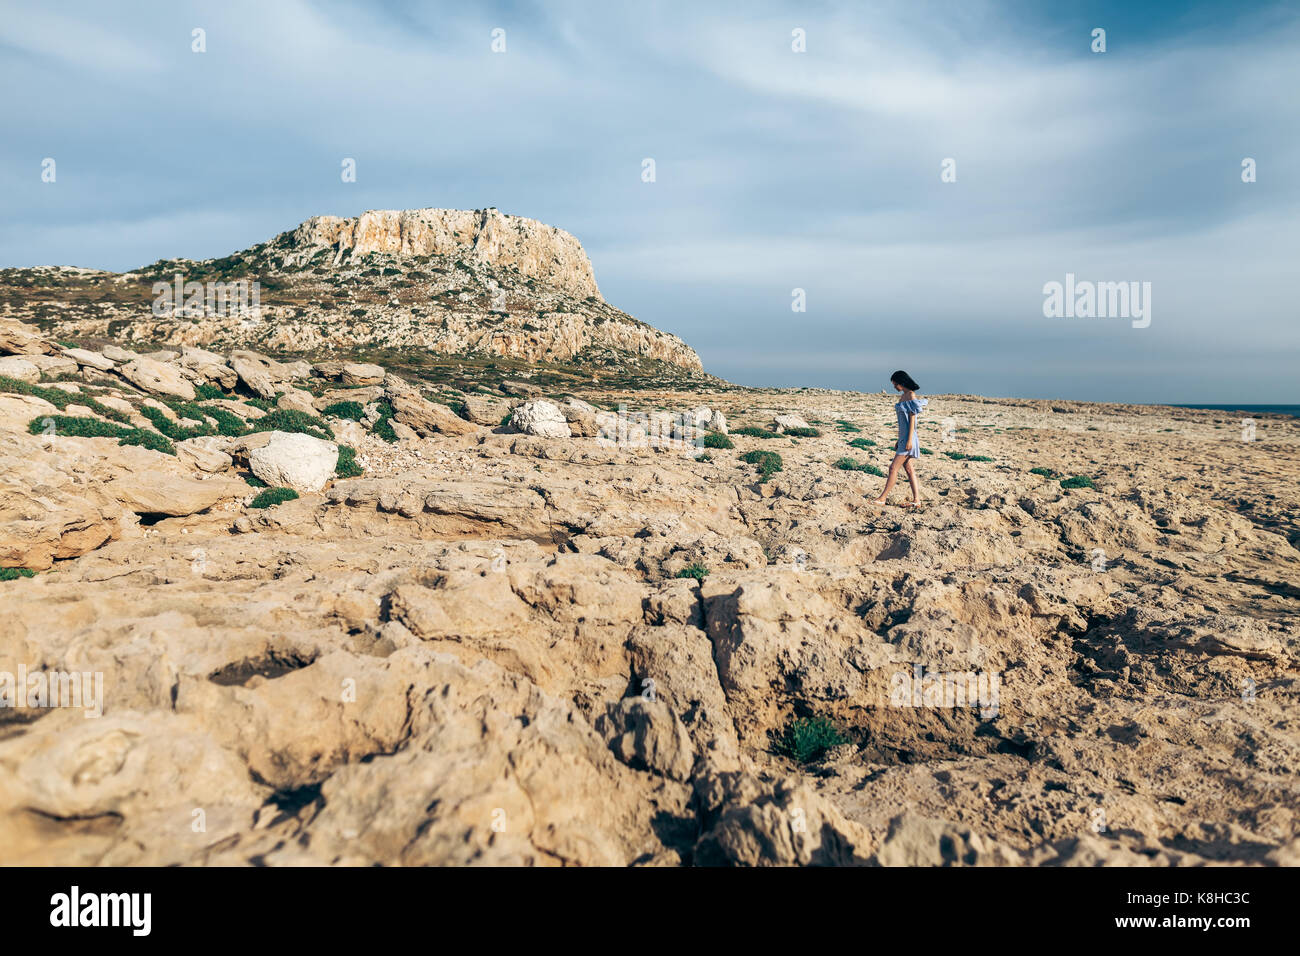 Beautiful alone woman walking on rocky desert with dramatic sky - Stock Image